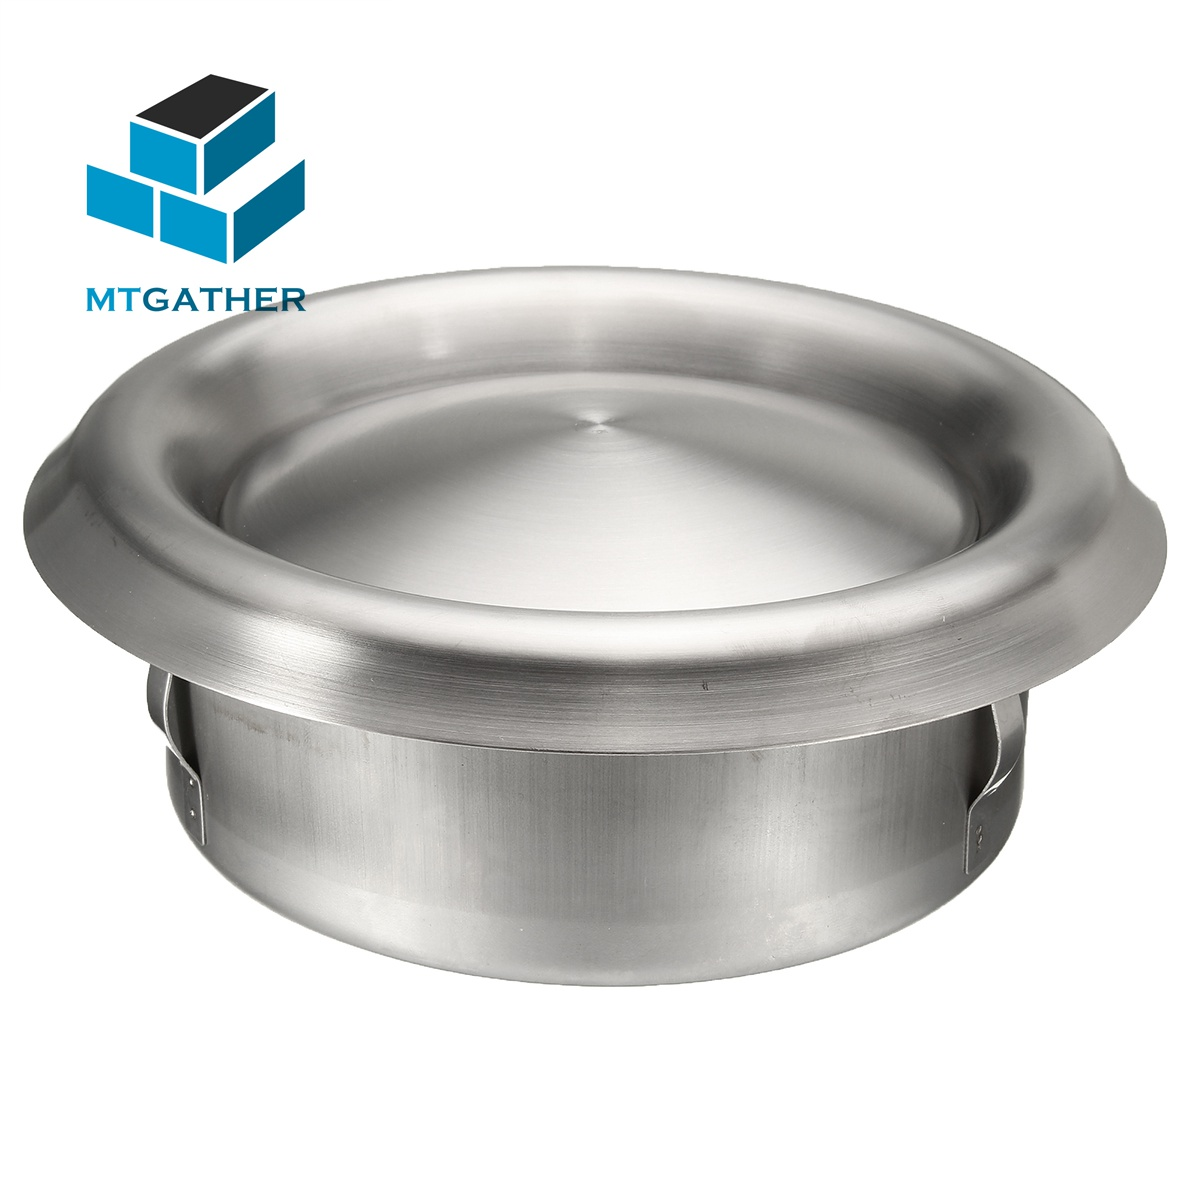 MTGATHER 3 Sizes Stainless Steel Air Vent <font><b>Duct</b></font> Grill Tumble Dryer Cooker Extractor <font><b>Fan</b></font> Heating Cooling & Vents <font><b>100mm</b></font> 125mm 150mm image